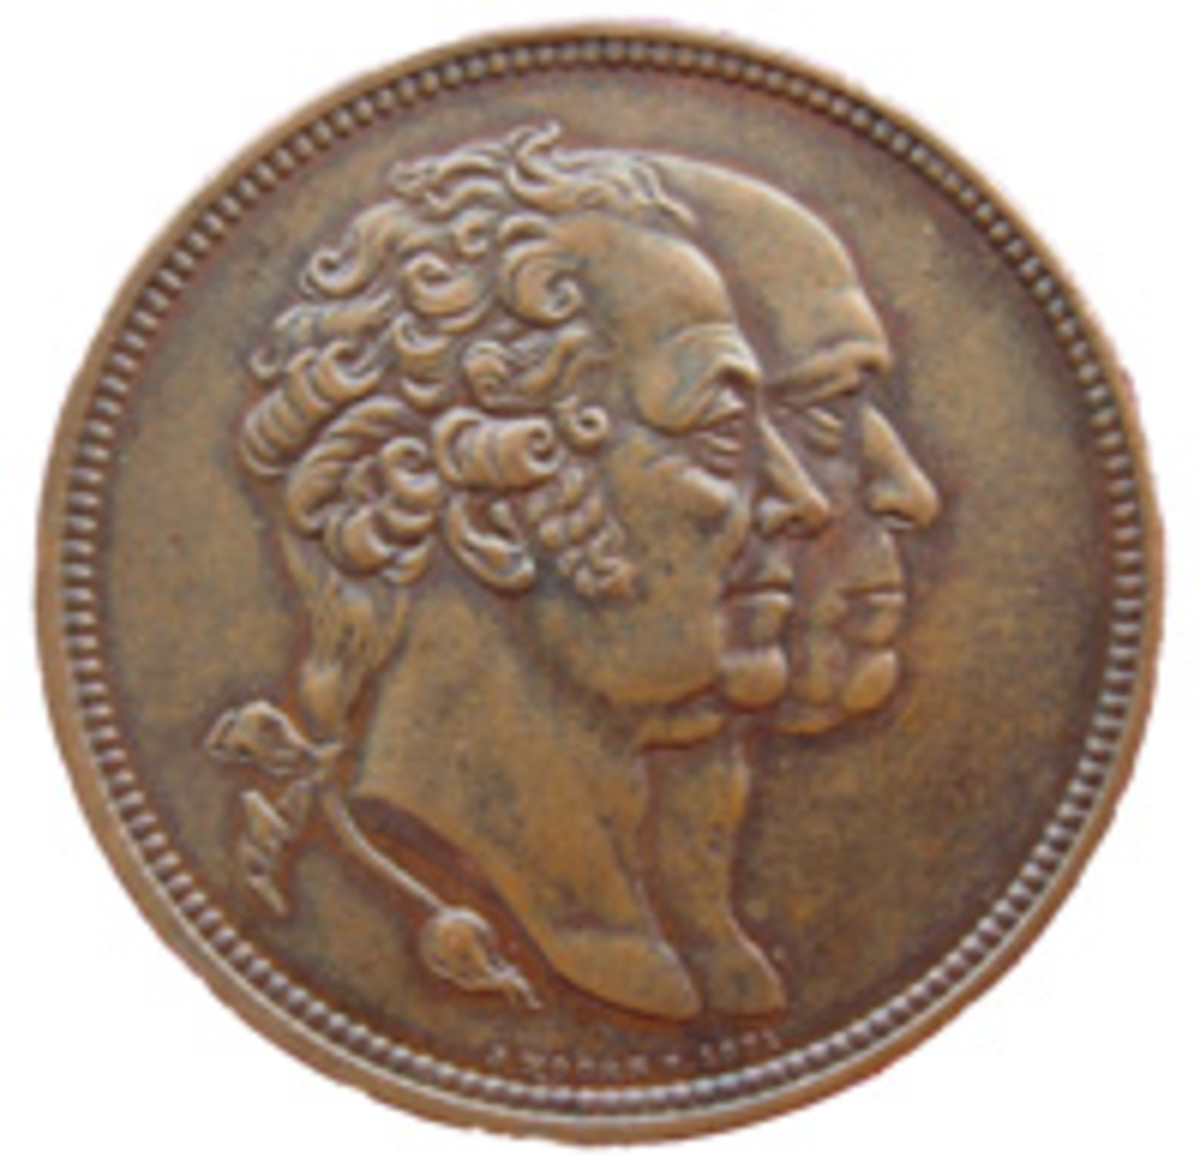 Conjoined busts of Boulton & Watt figure on a 37mm bronze medal by Joseph Moore and struck for James Watt & Co. (Image courtesy and © Chris Leather www.sohomint.info)